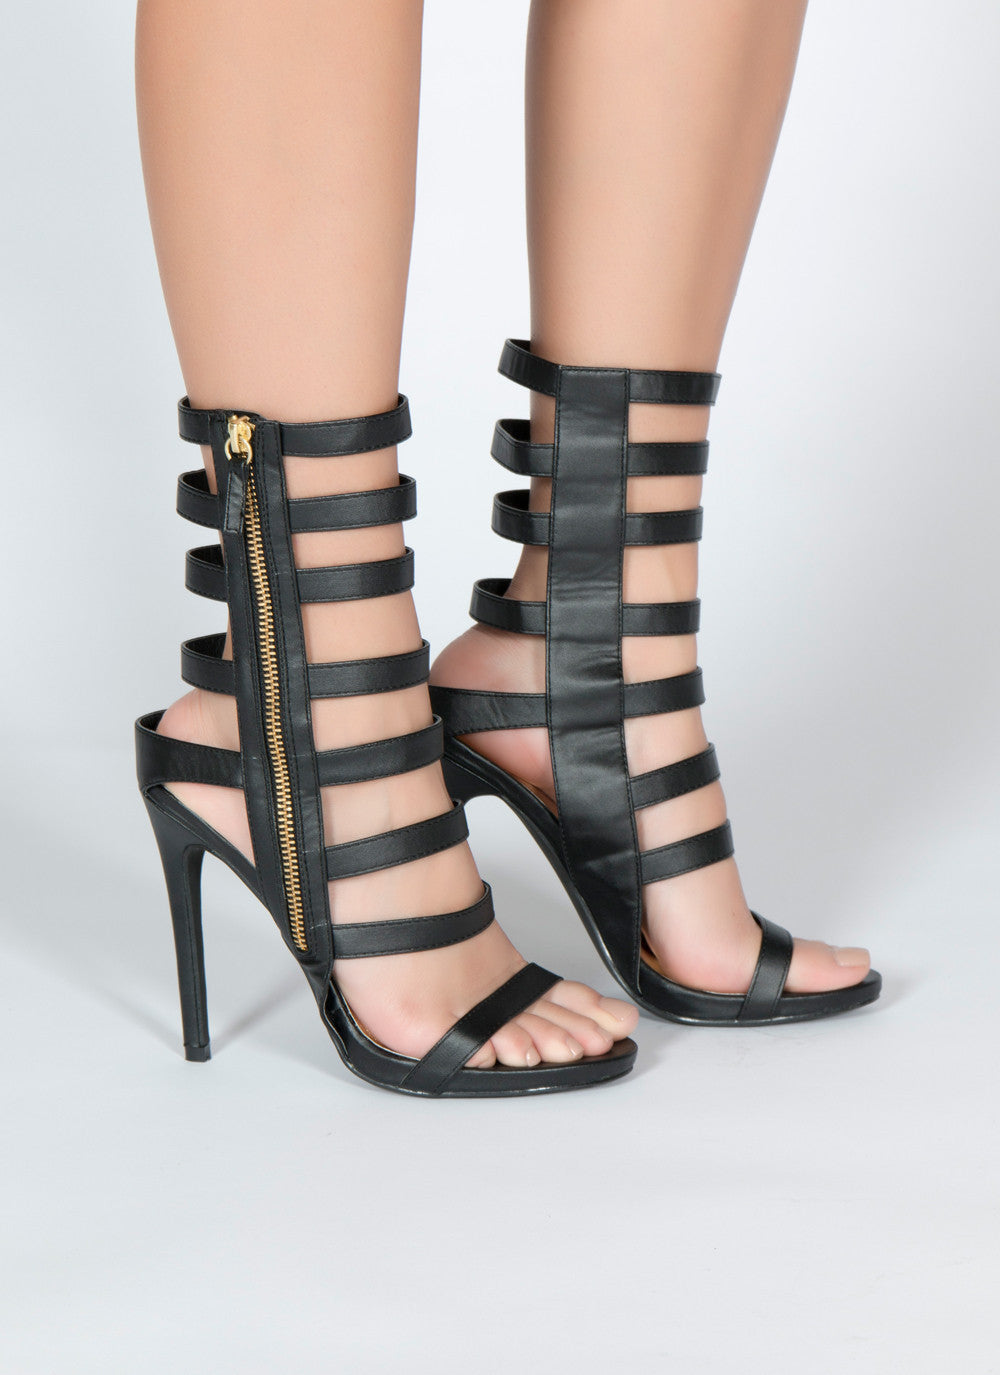 Jesse-47 7 / Heel height approx 5inches material : man made, Heel - Fashion Trend LA, Fashion Trend LA  - 1